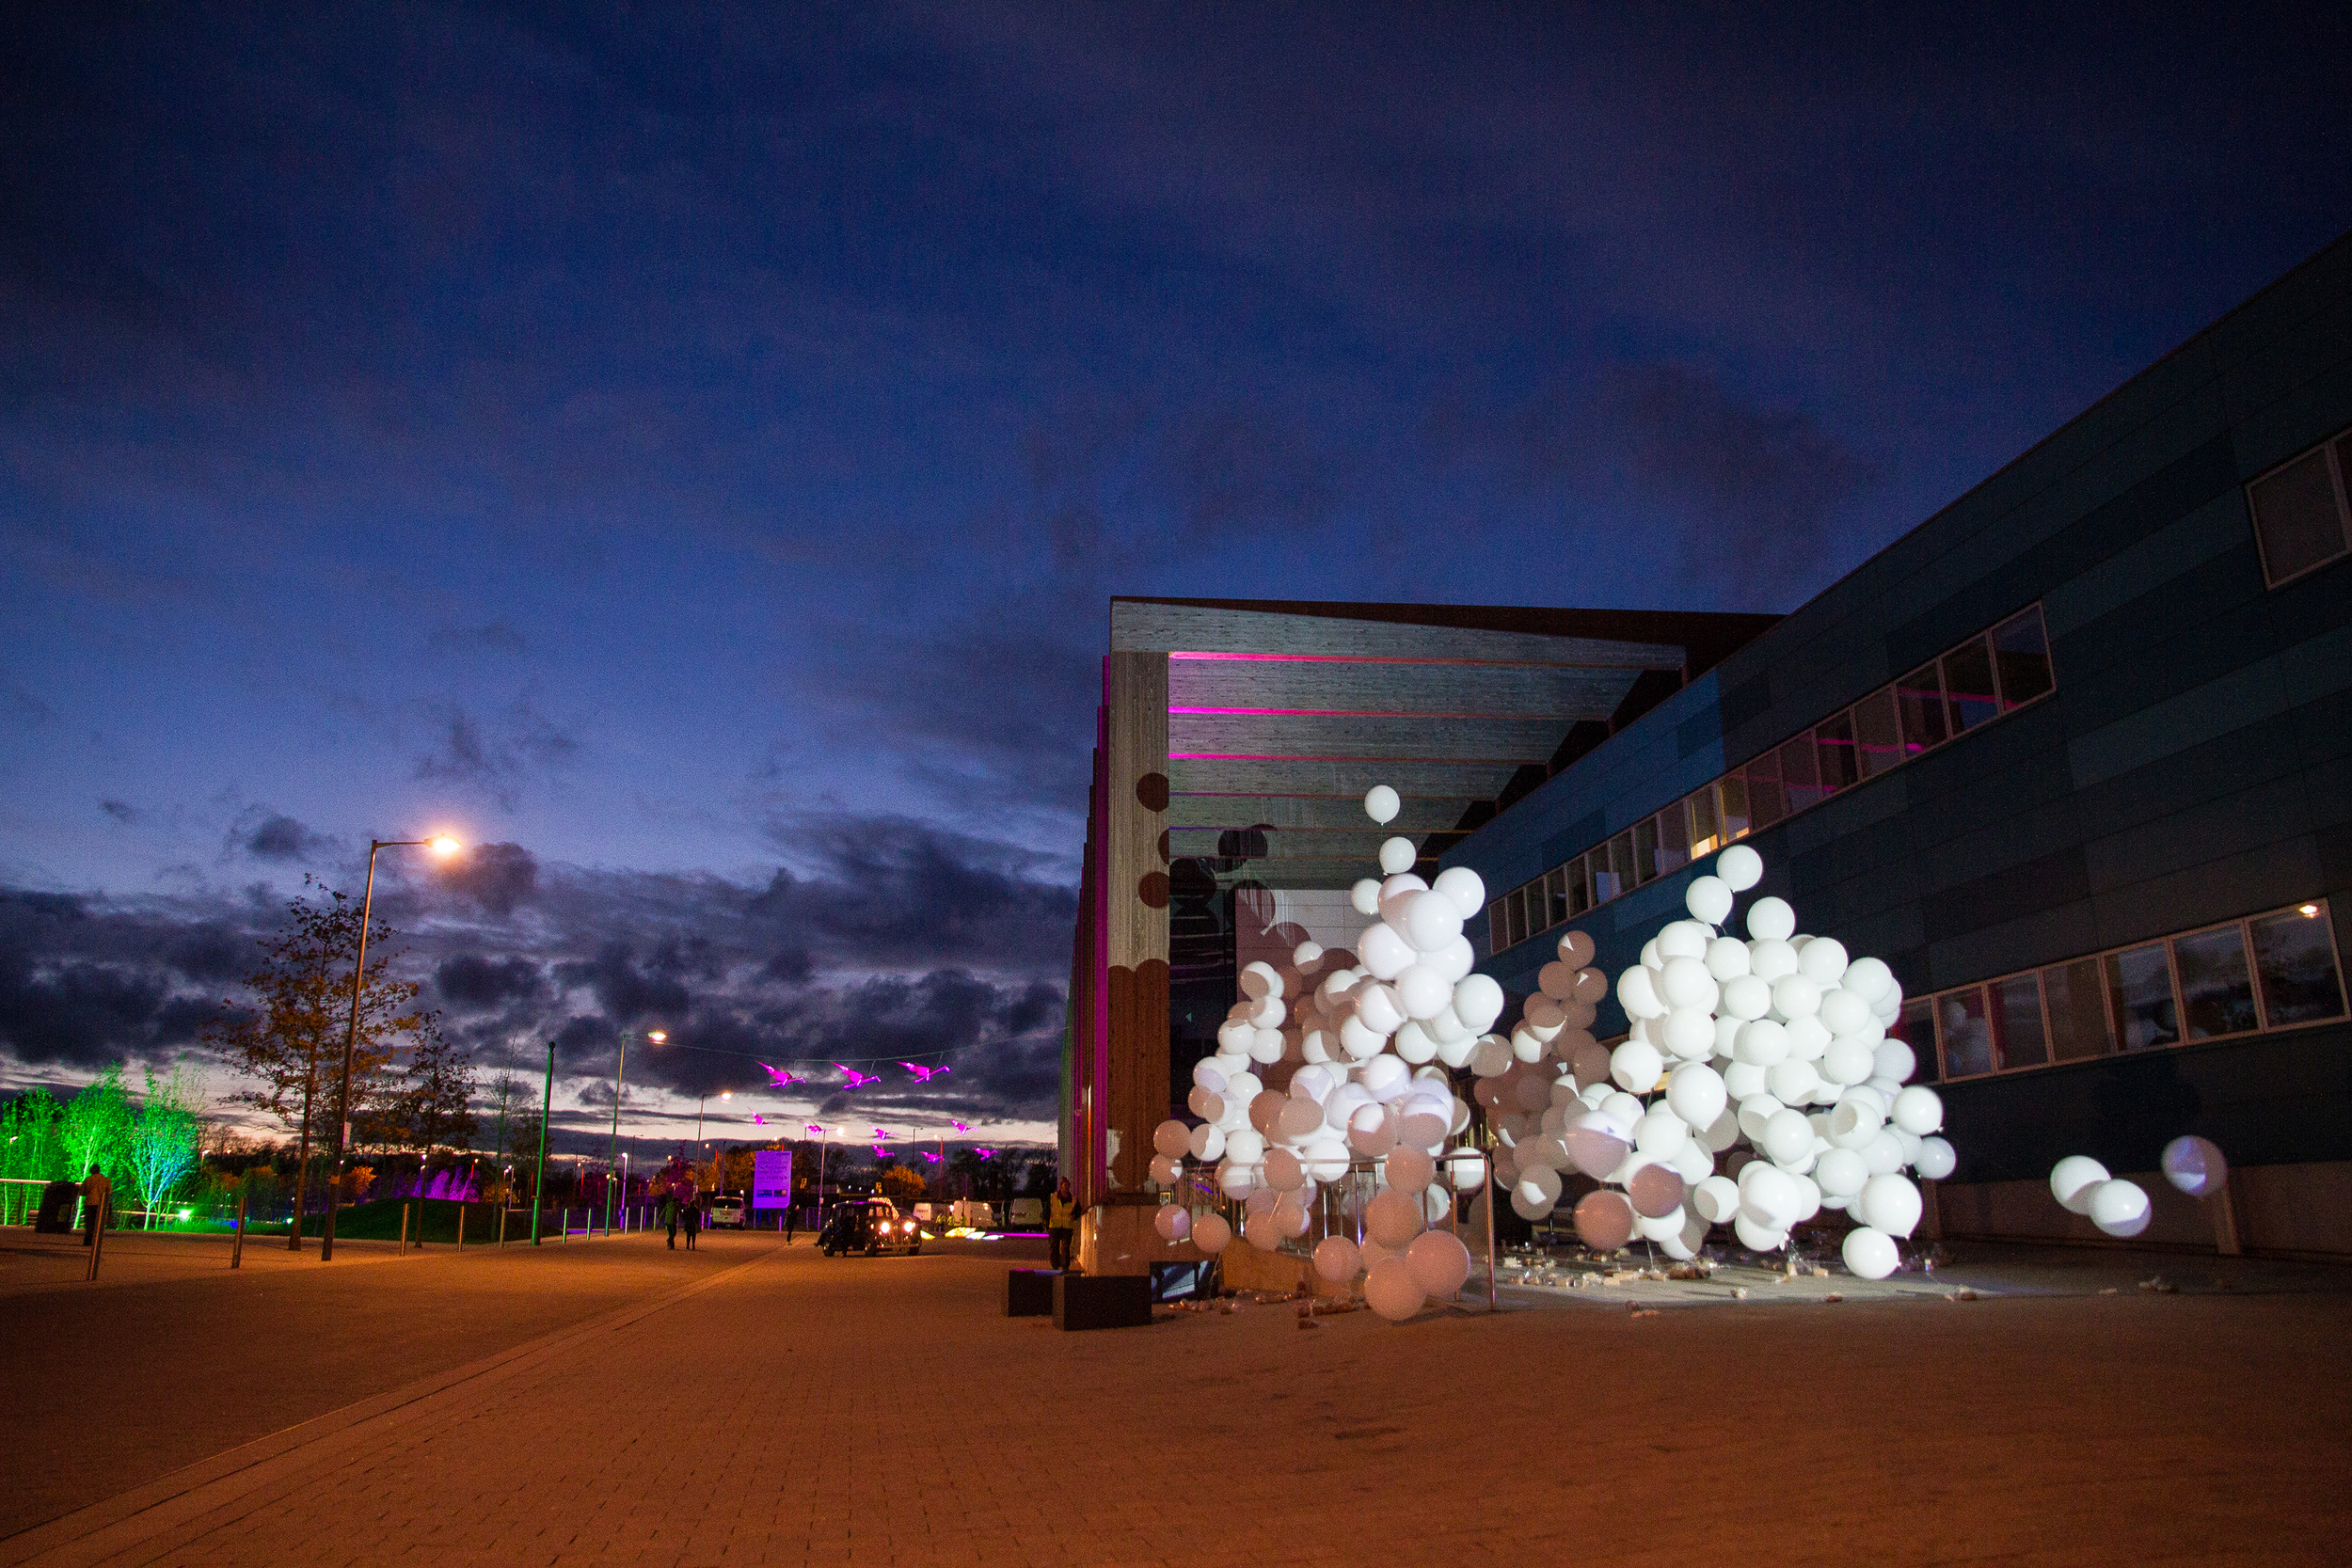 'H20' by Collectif Coin at LPAP launch event in 2013, photography by Pete Sloan